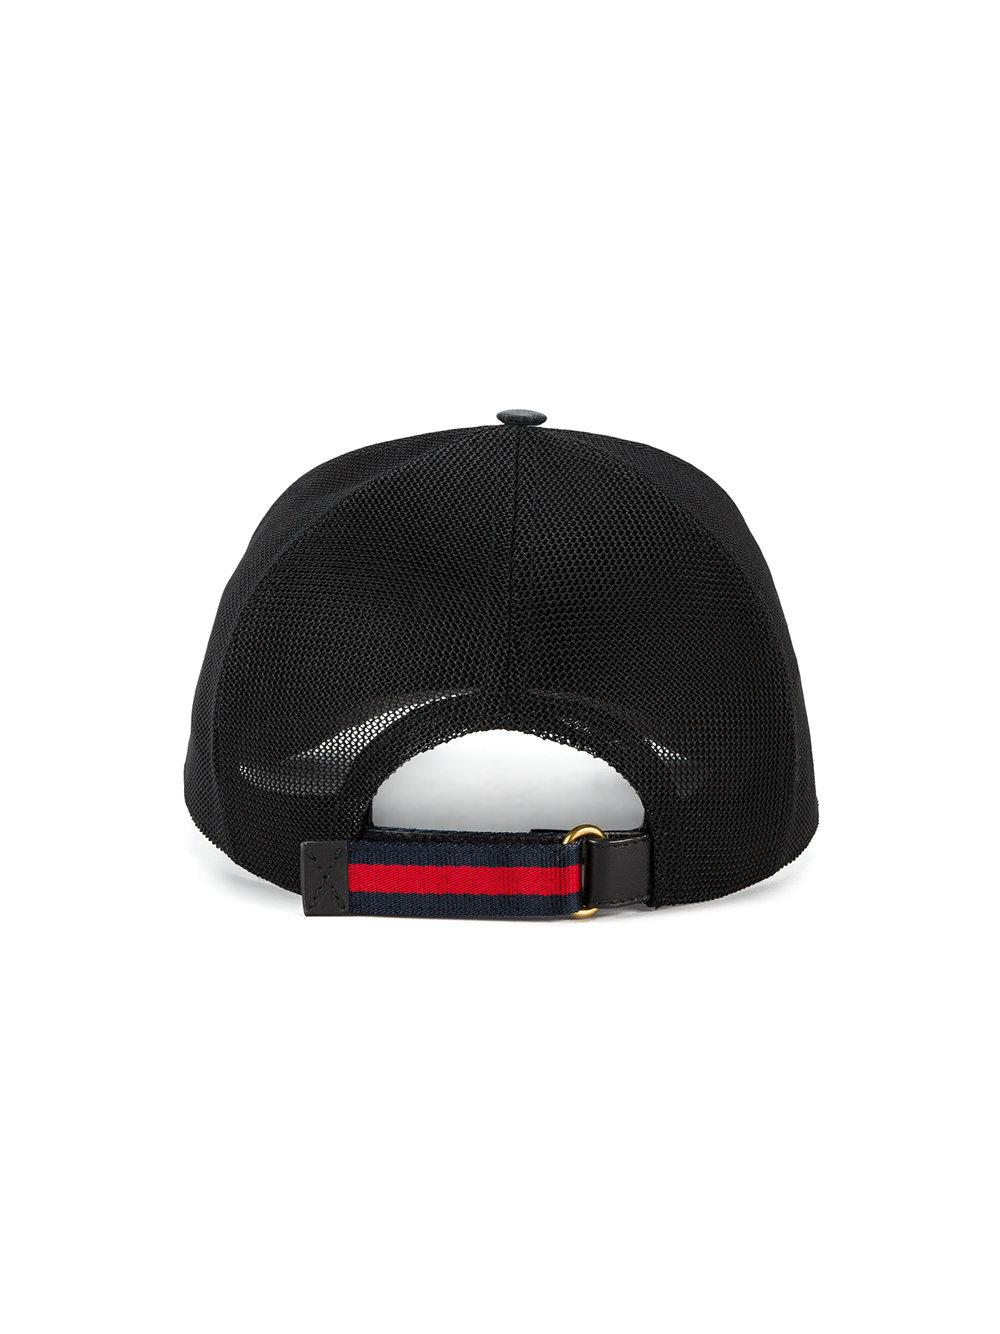 7af8f316f0c Lyst - Gucci Gg Supreme Angry Cat Baseball Cap in Black for Men